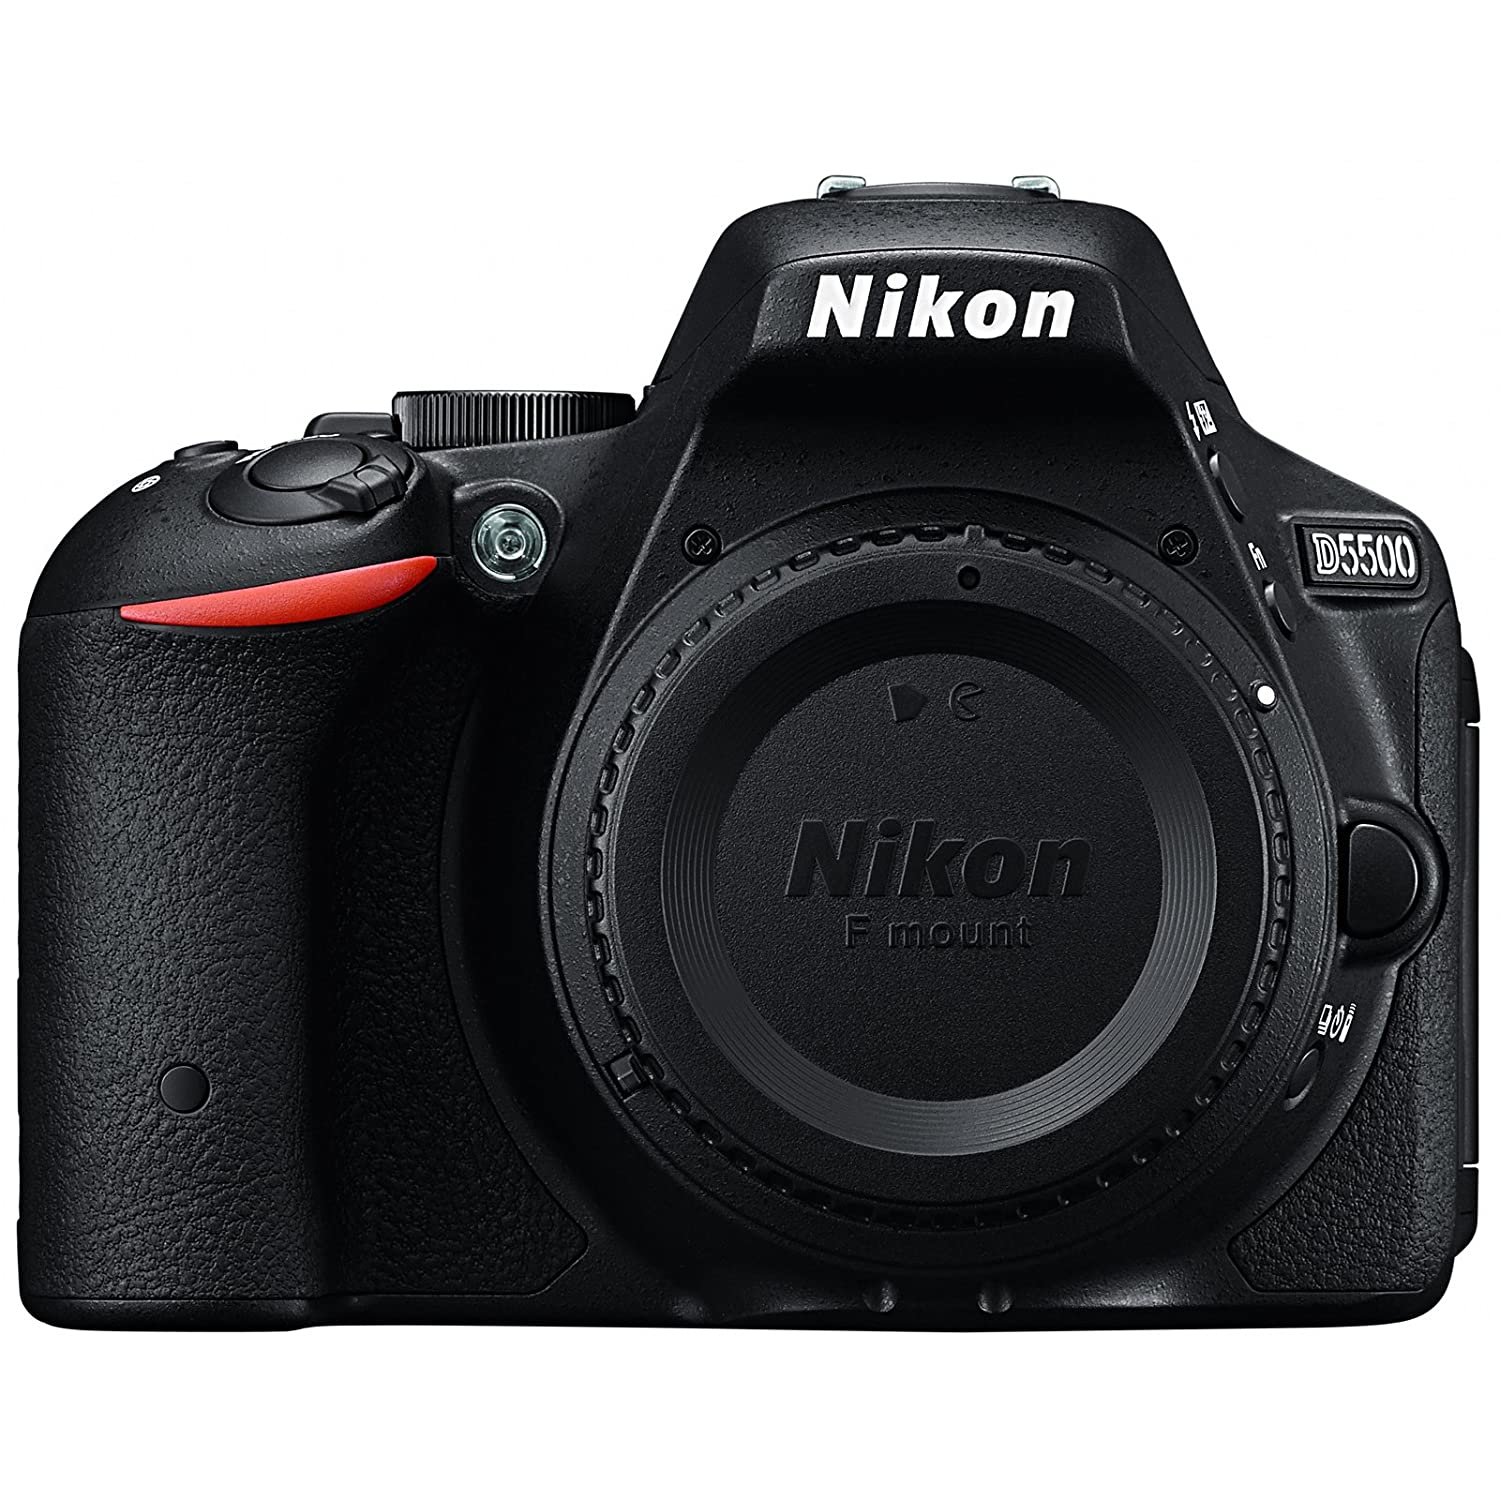 Nikon D5500 Wi-Fi Digital SLR Camera Body (Black) - Certified Refurbished